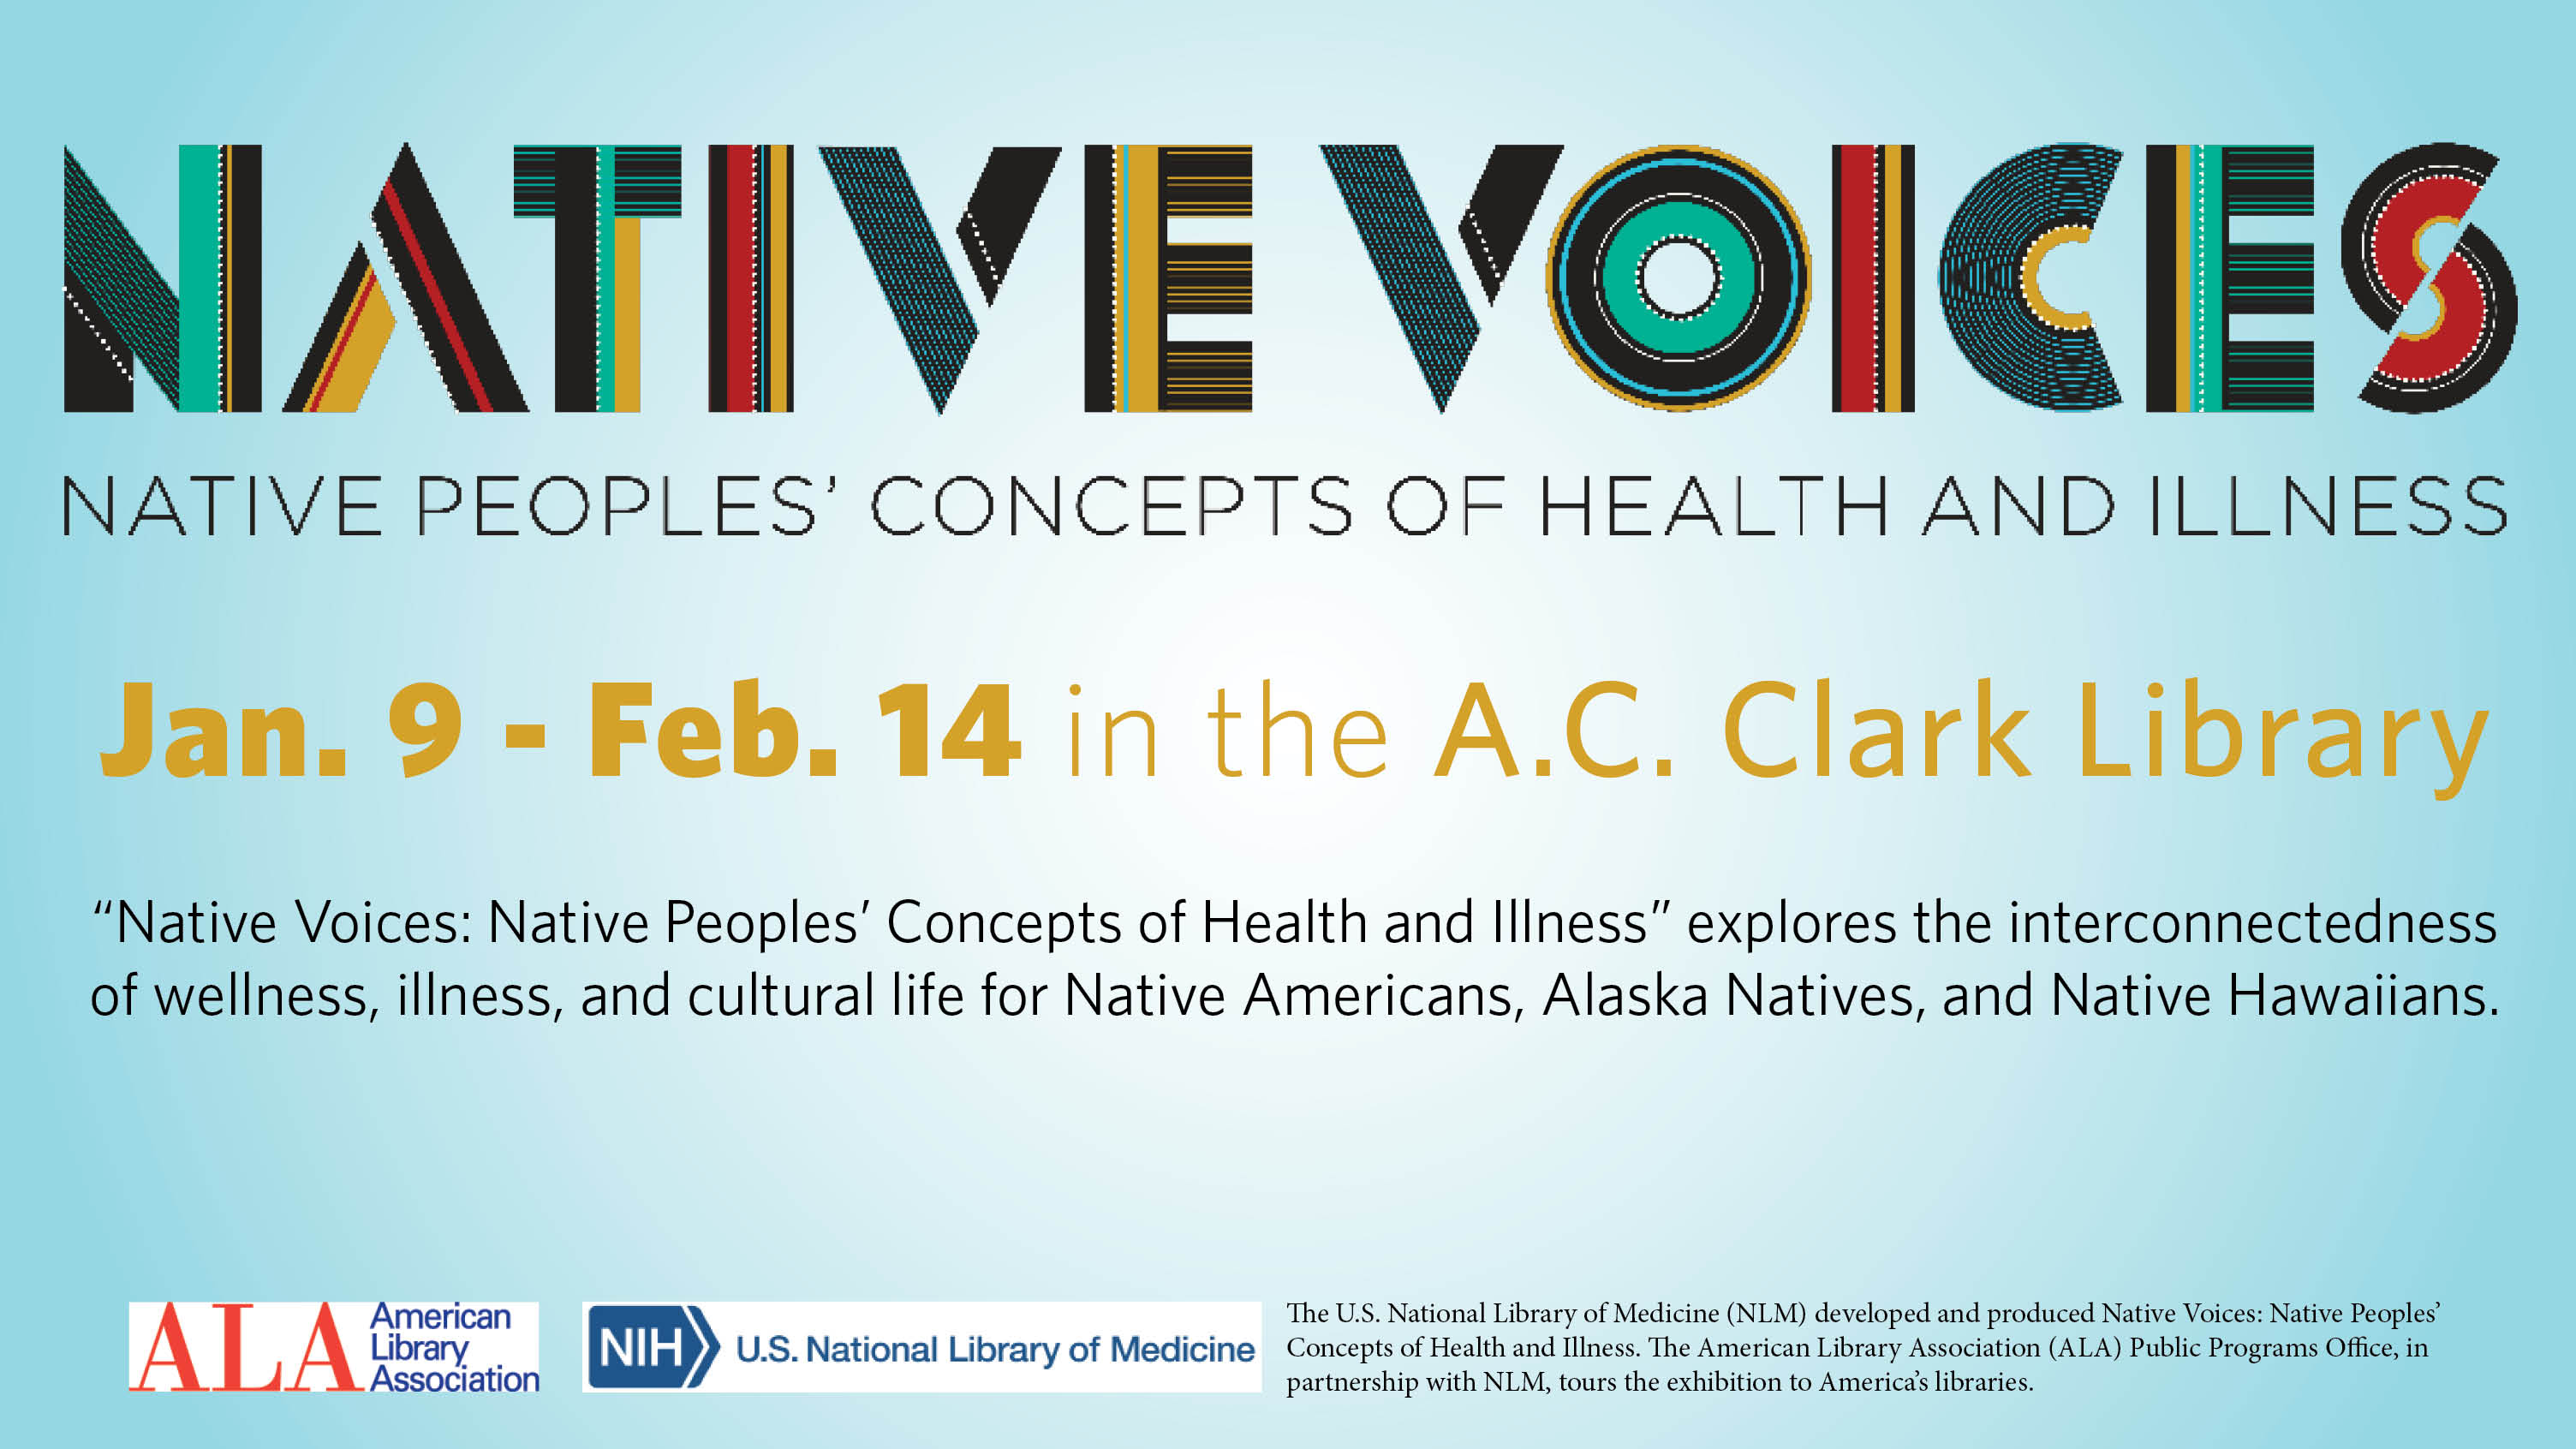 Bemidji State University's A.C. Clark Library has been selected as one of only 104 libraries nationwide that will host a traveling exhibit from Jan. 9 - Feb 14. exploring the concepts of health and illness amongst native peoples.